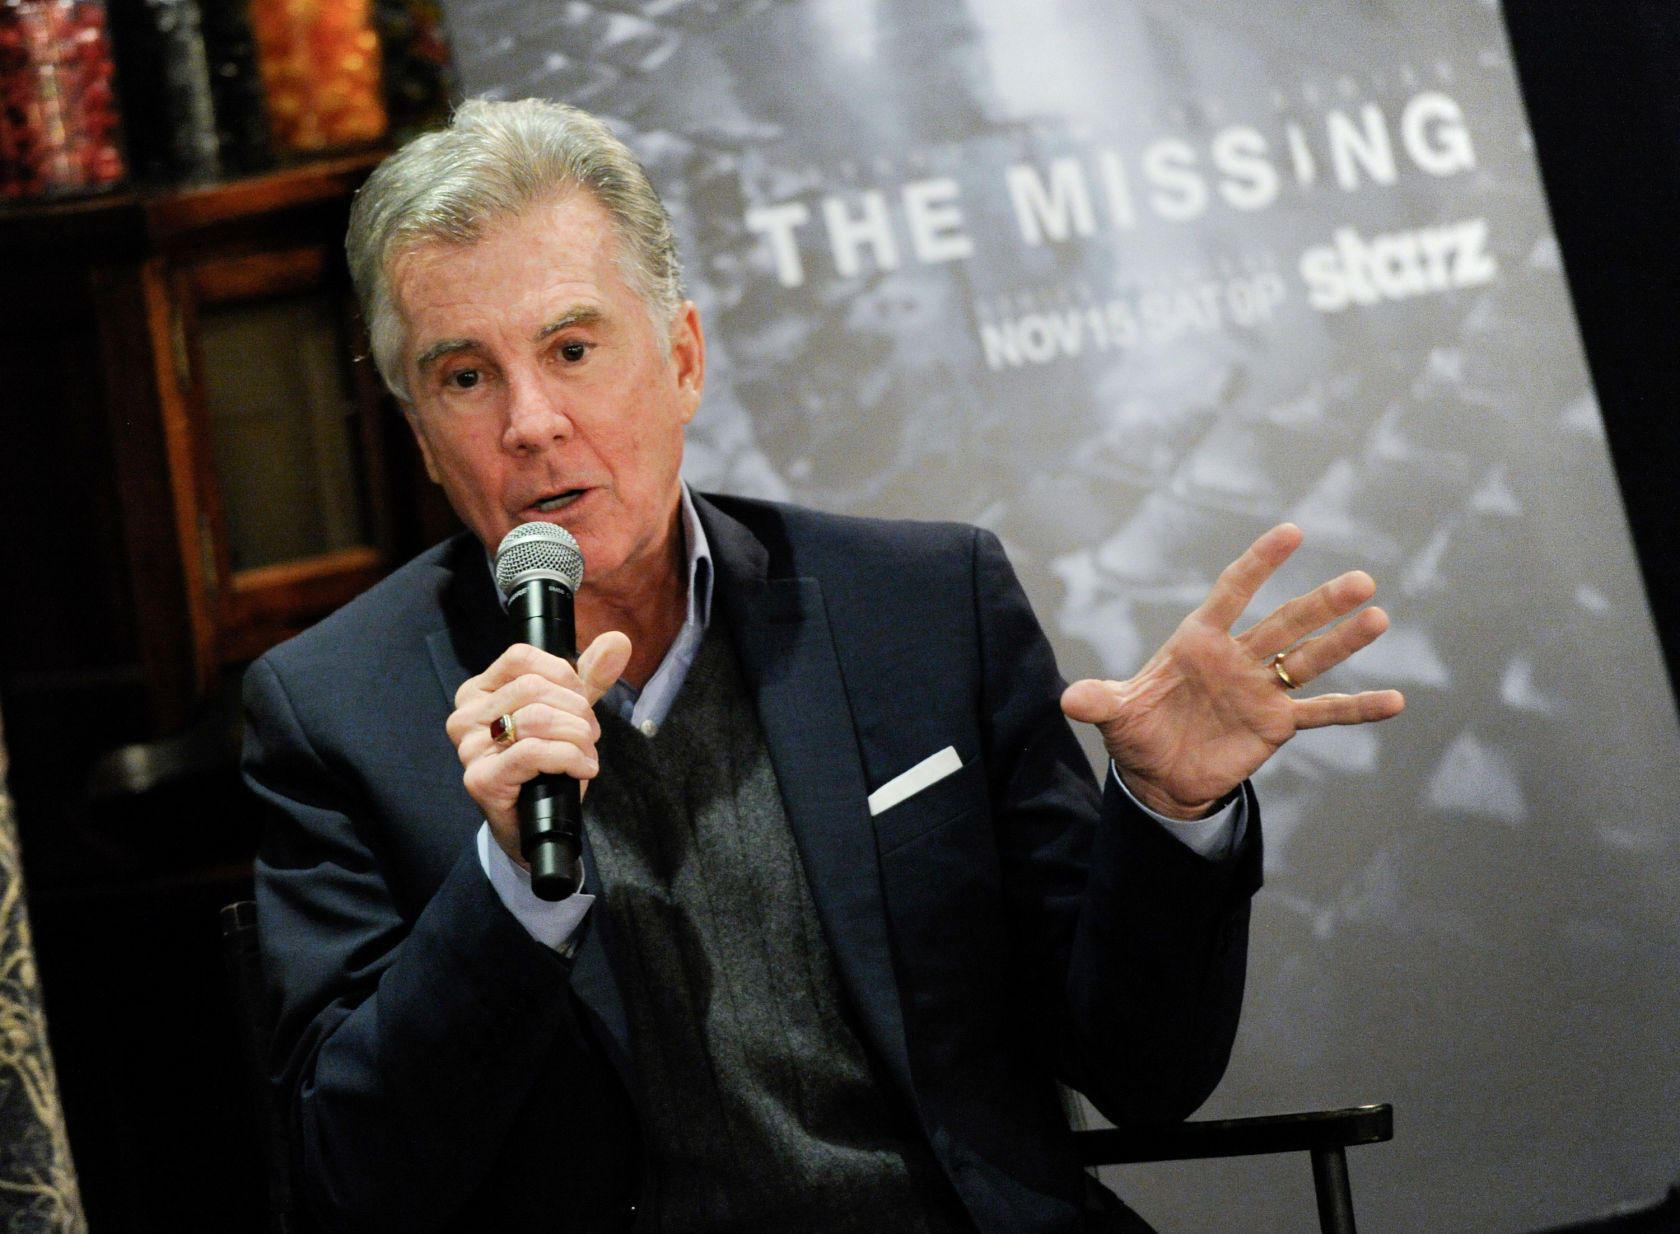 Auburn native John Walsh, 'America's Most Wanted' creator, stars in TV ad for Katko